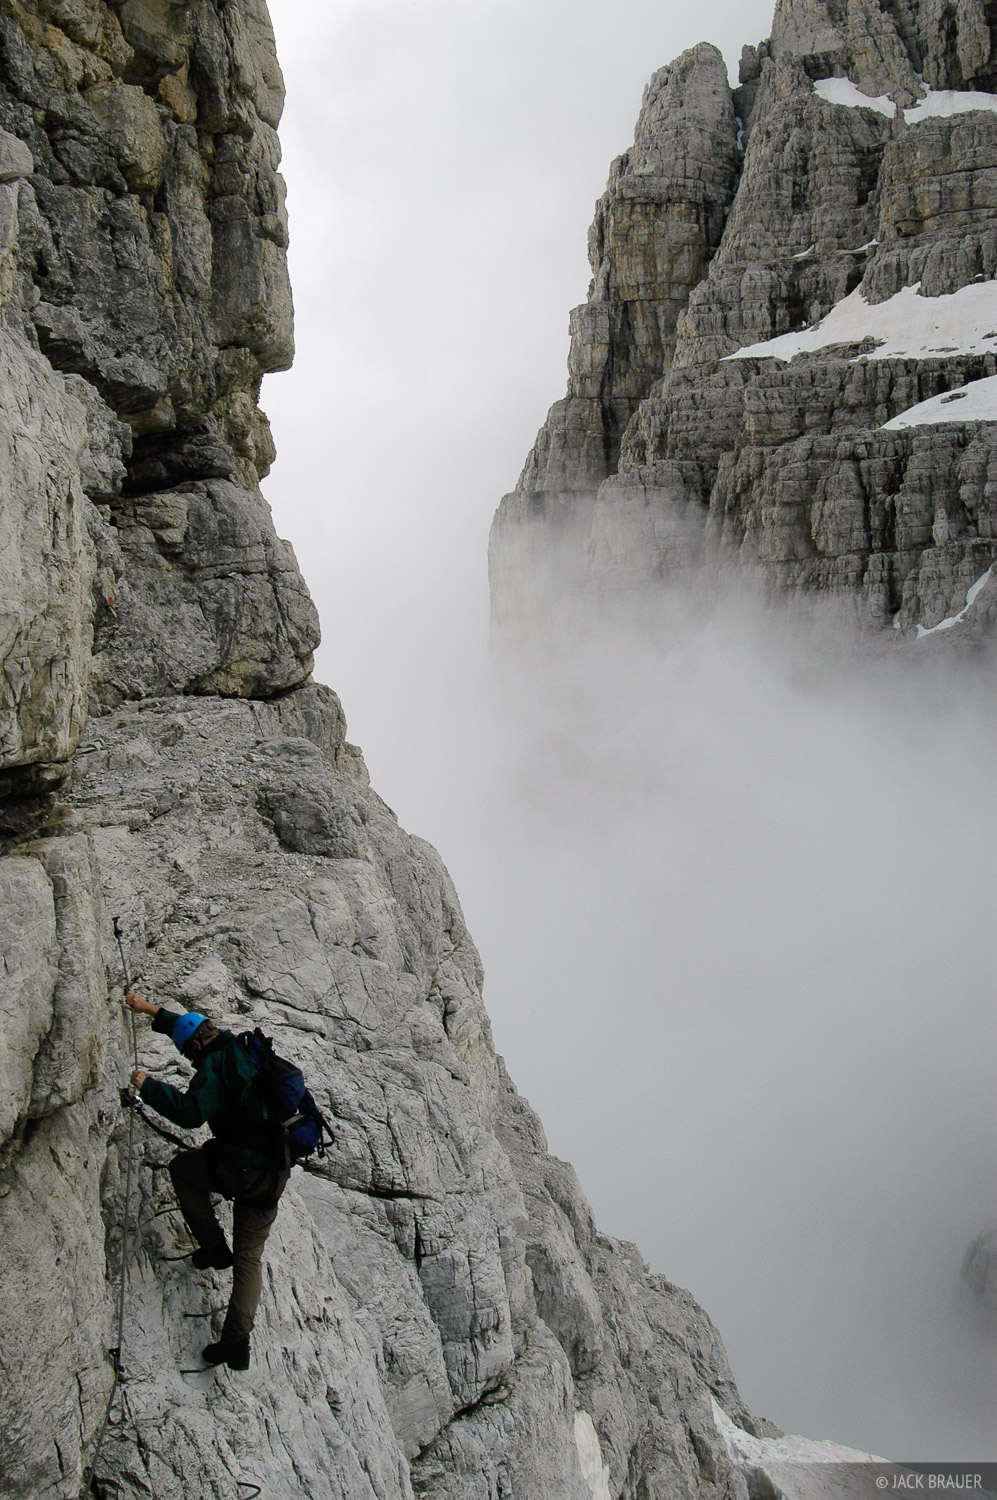 Brenta group, via ferrata, climbing, Madonna di Campiglio, Dolomites, Italy, photo